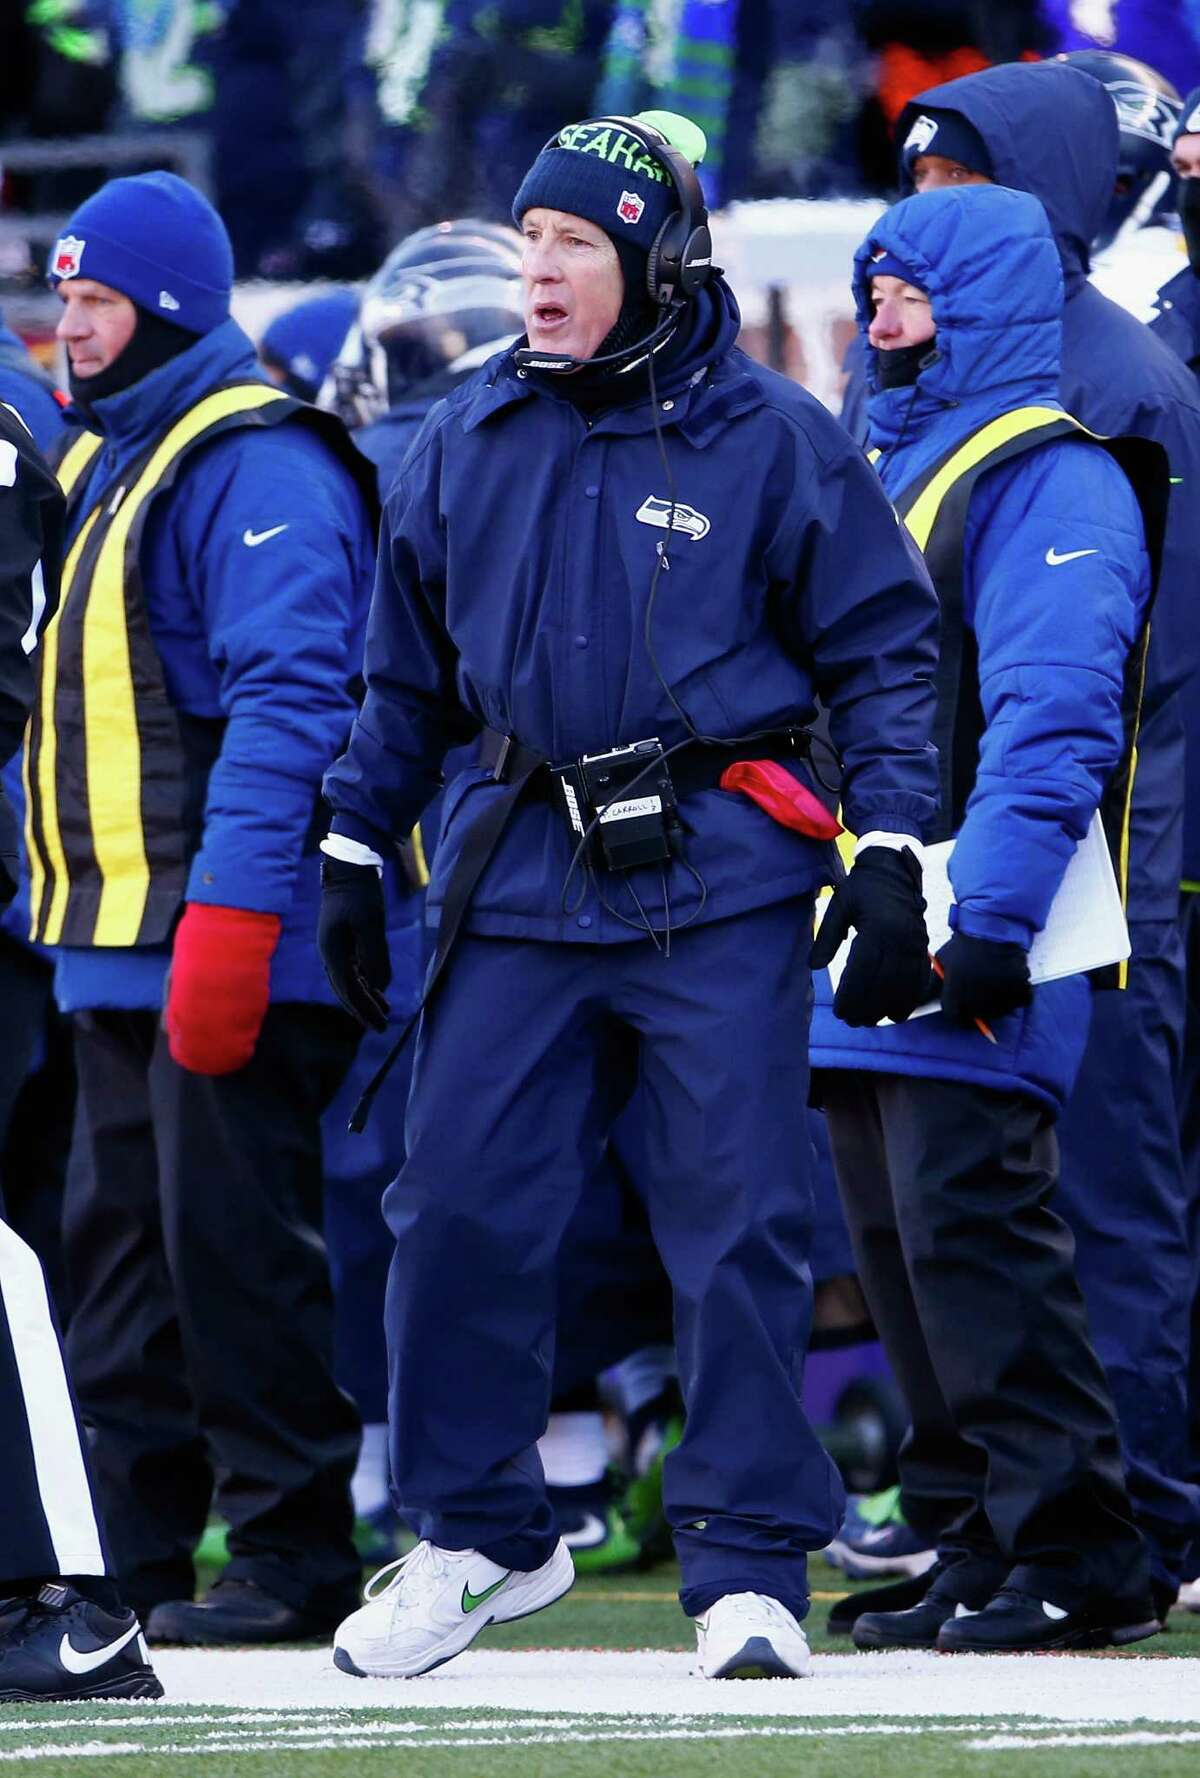 MINNEAPOLIS, MN - JANUARY 10: Head coach Pete Carroll of the Seattle Seahawks stands on the sideline in the first half against the Minnesota Vikings during the NFC Wild Card Playoff game at TCFBank Stadium on January 10, 2016 in Minneapolis, Minnesota.